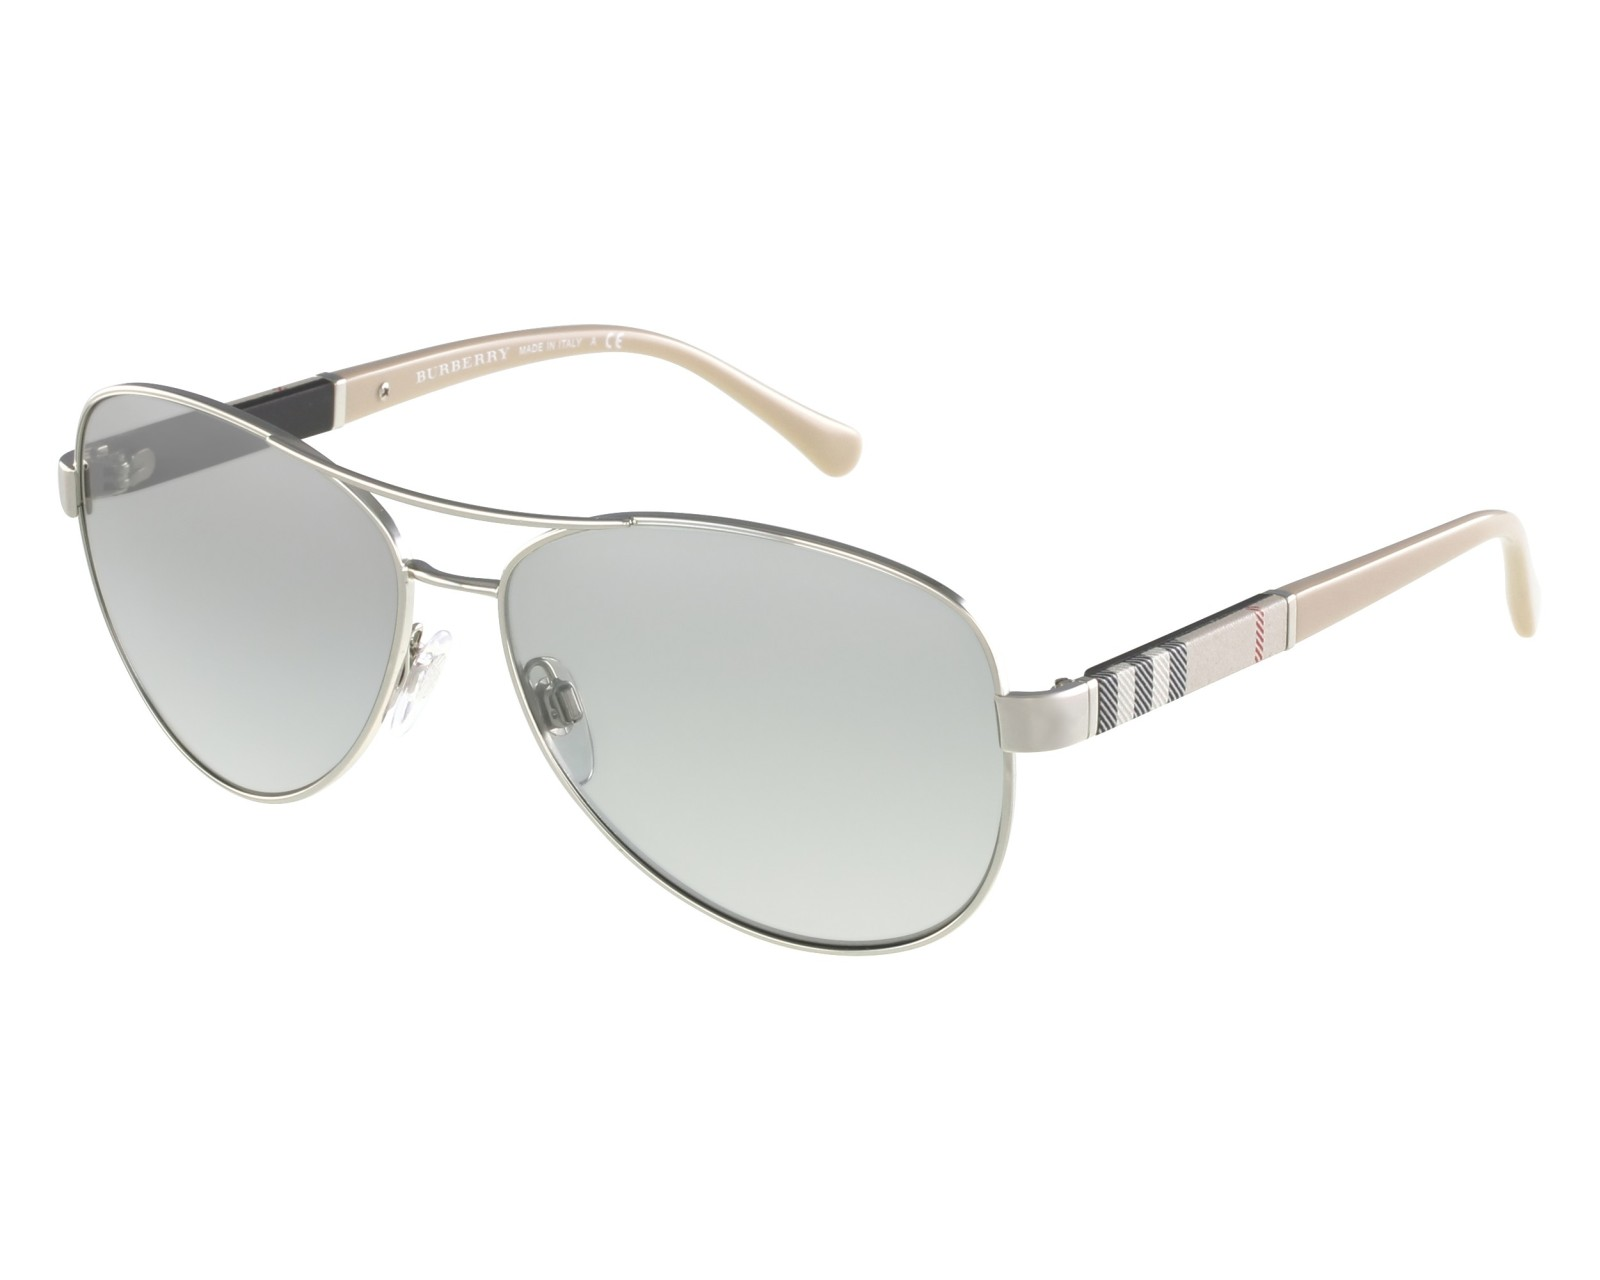 aa8ff87506 Sunglasses Burberry BE-3080 1005 6V 59-14 Silver Beige front view